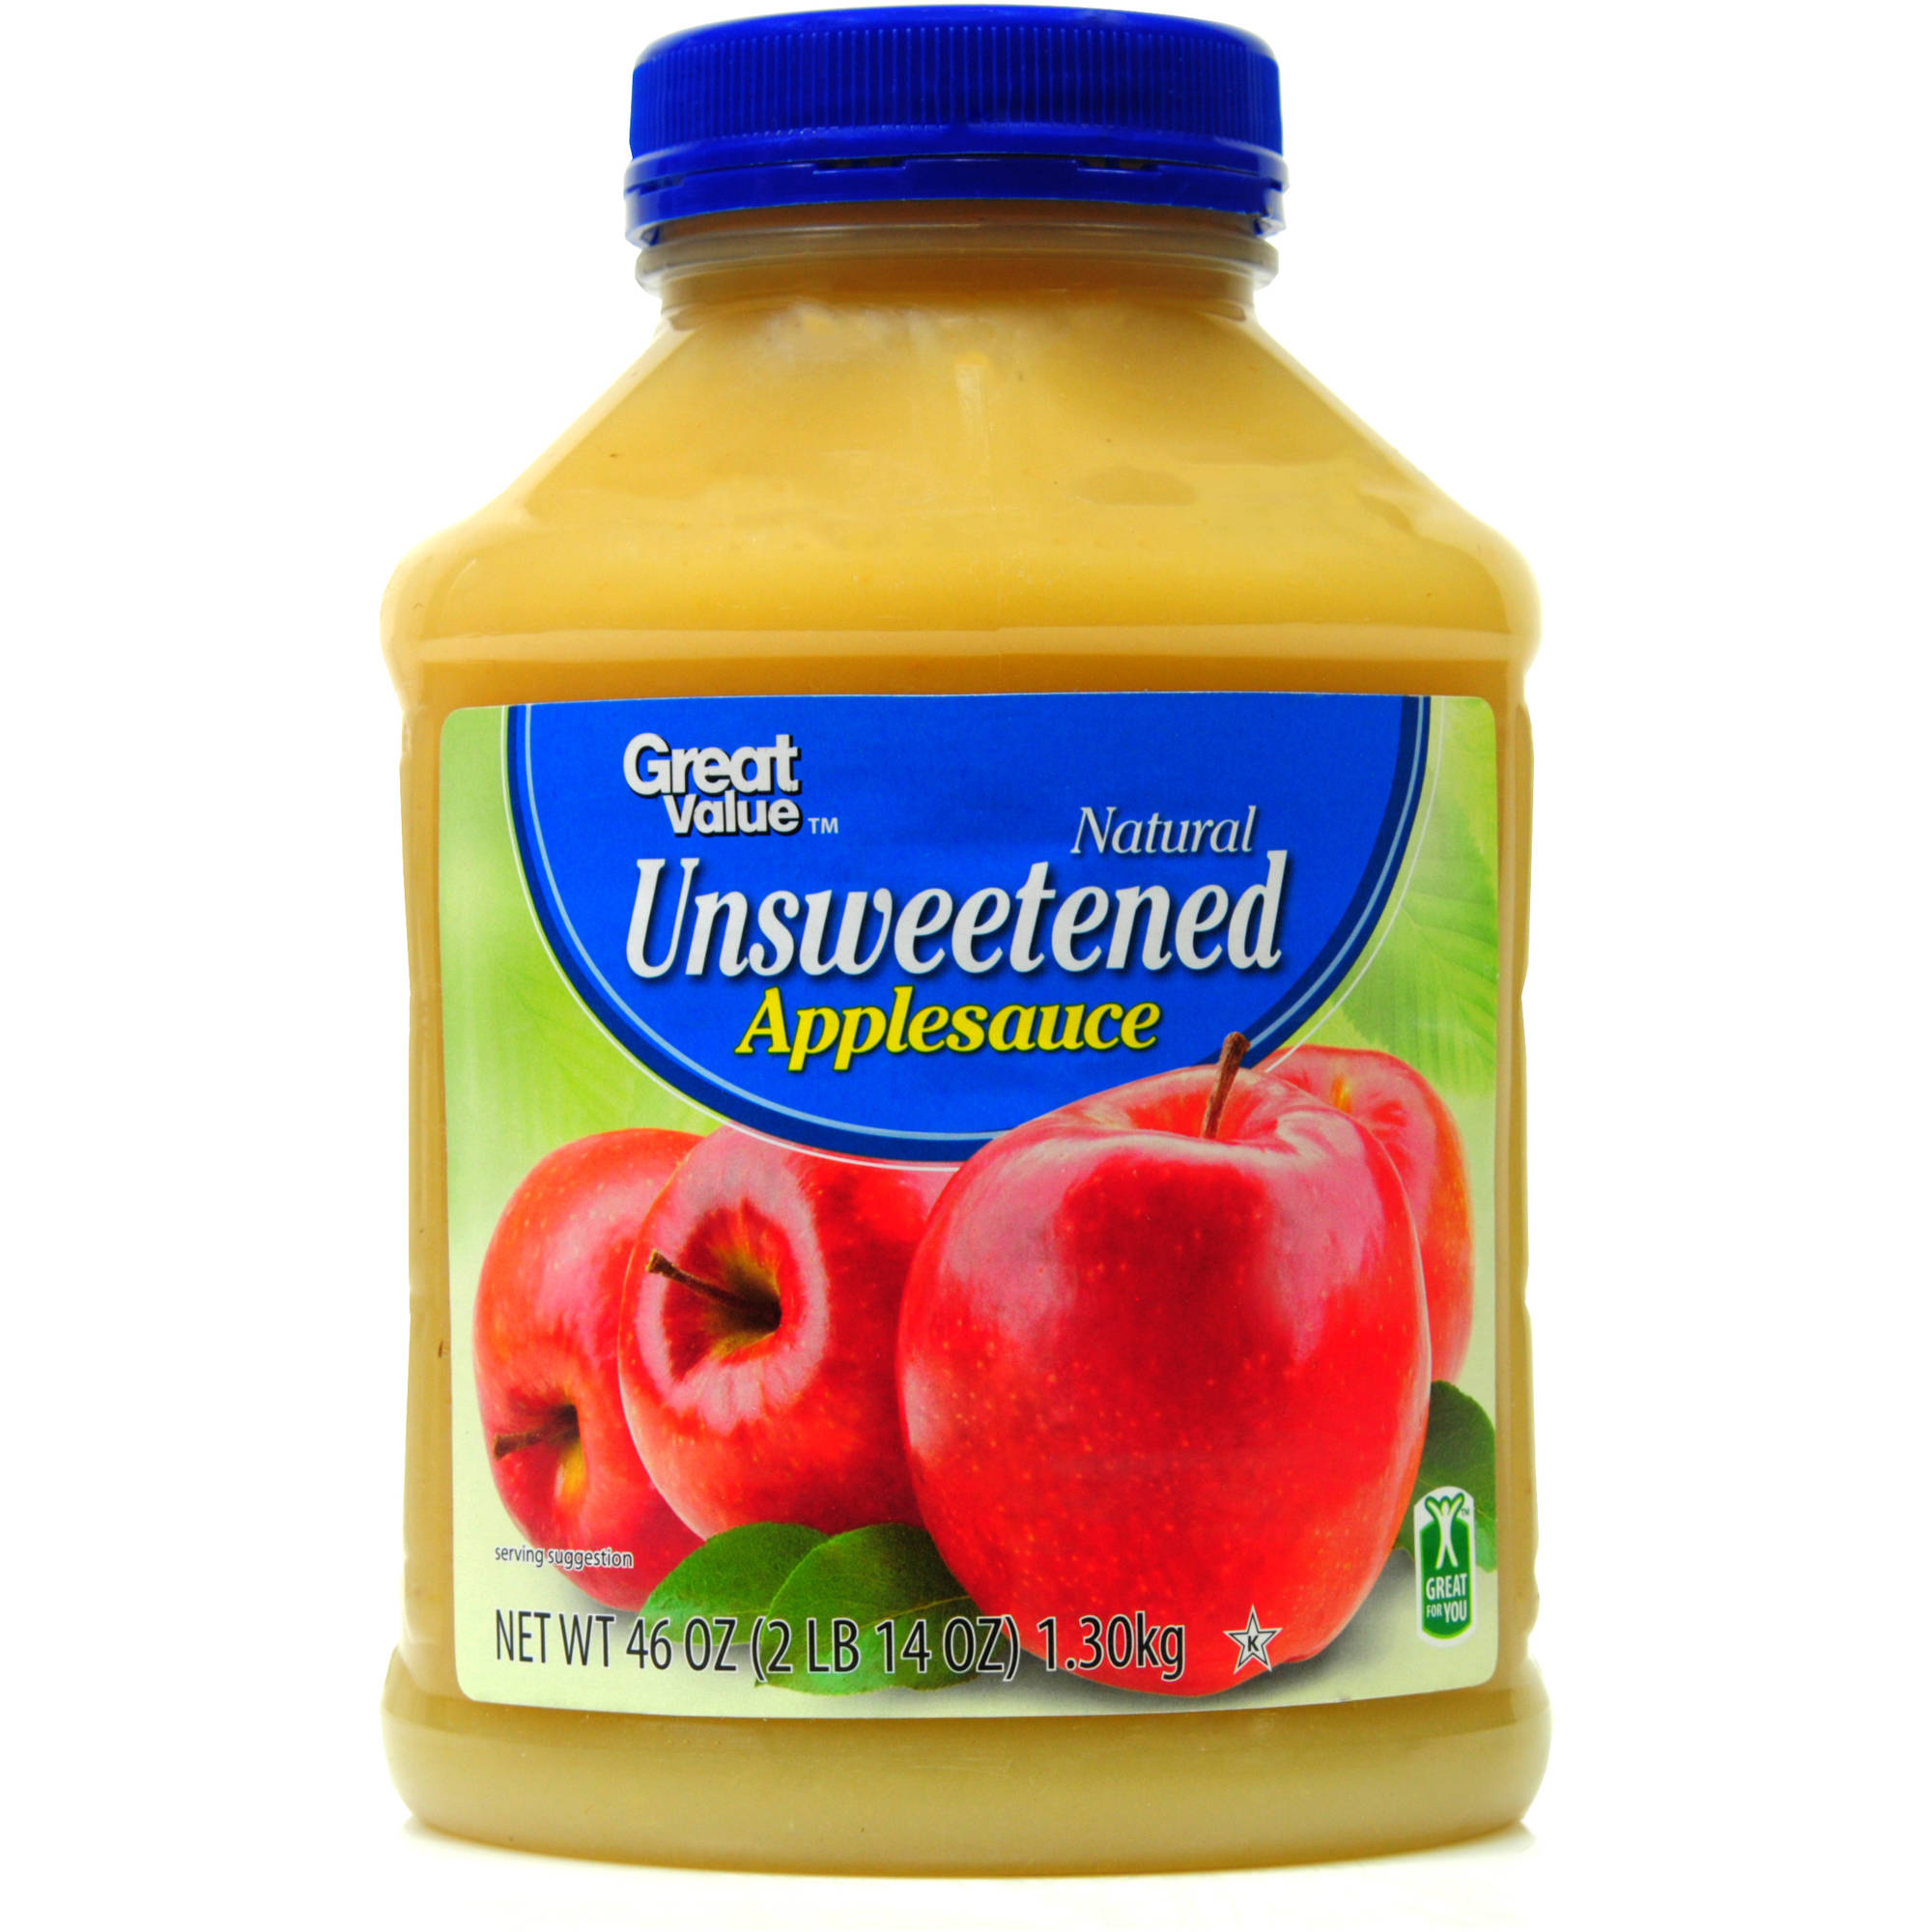 Great Value Natural Unsweetened Applesauce, 46 oz